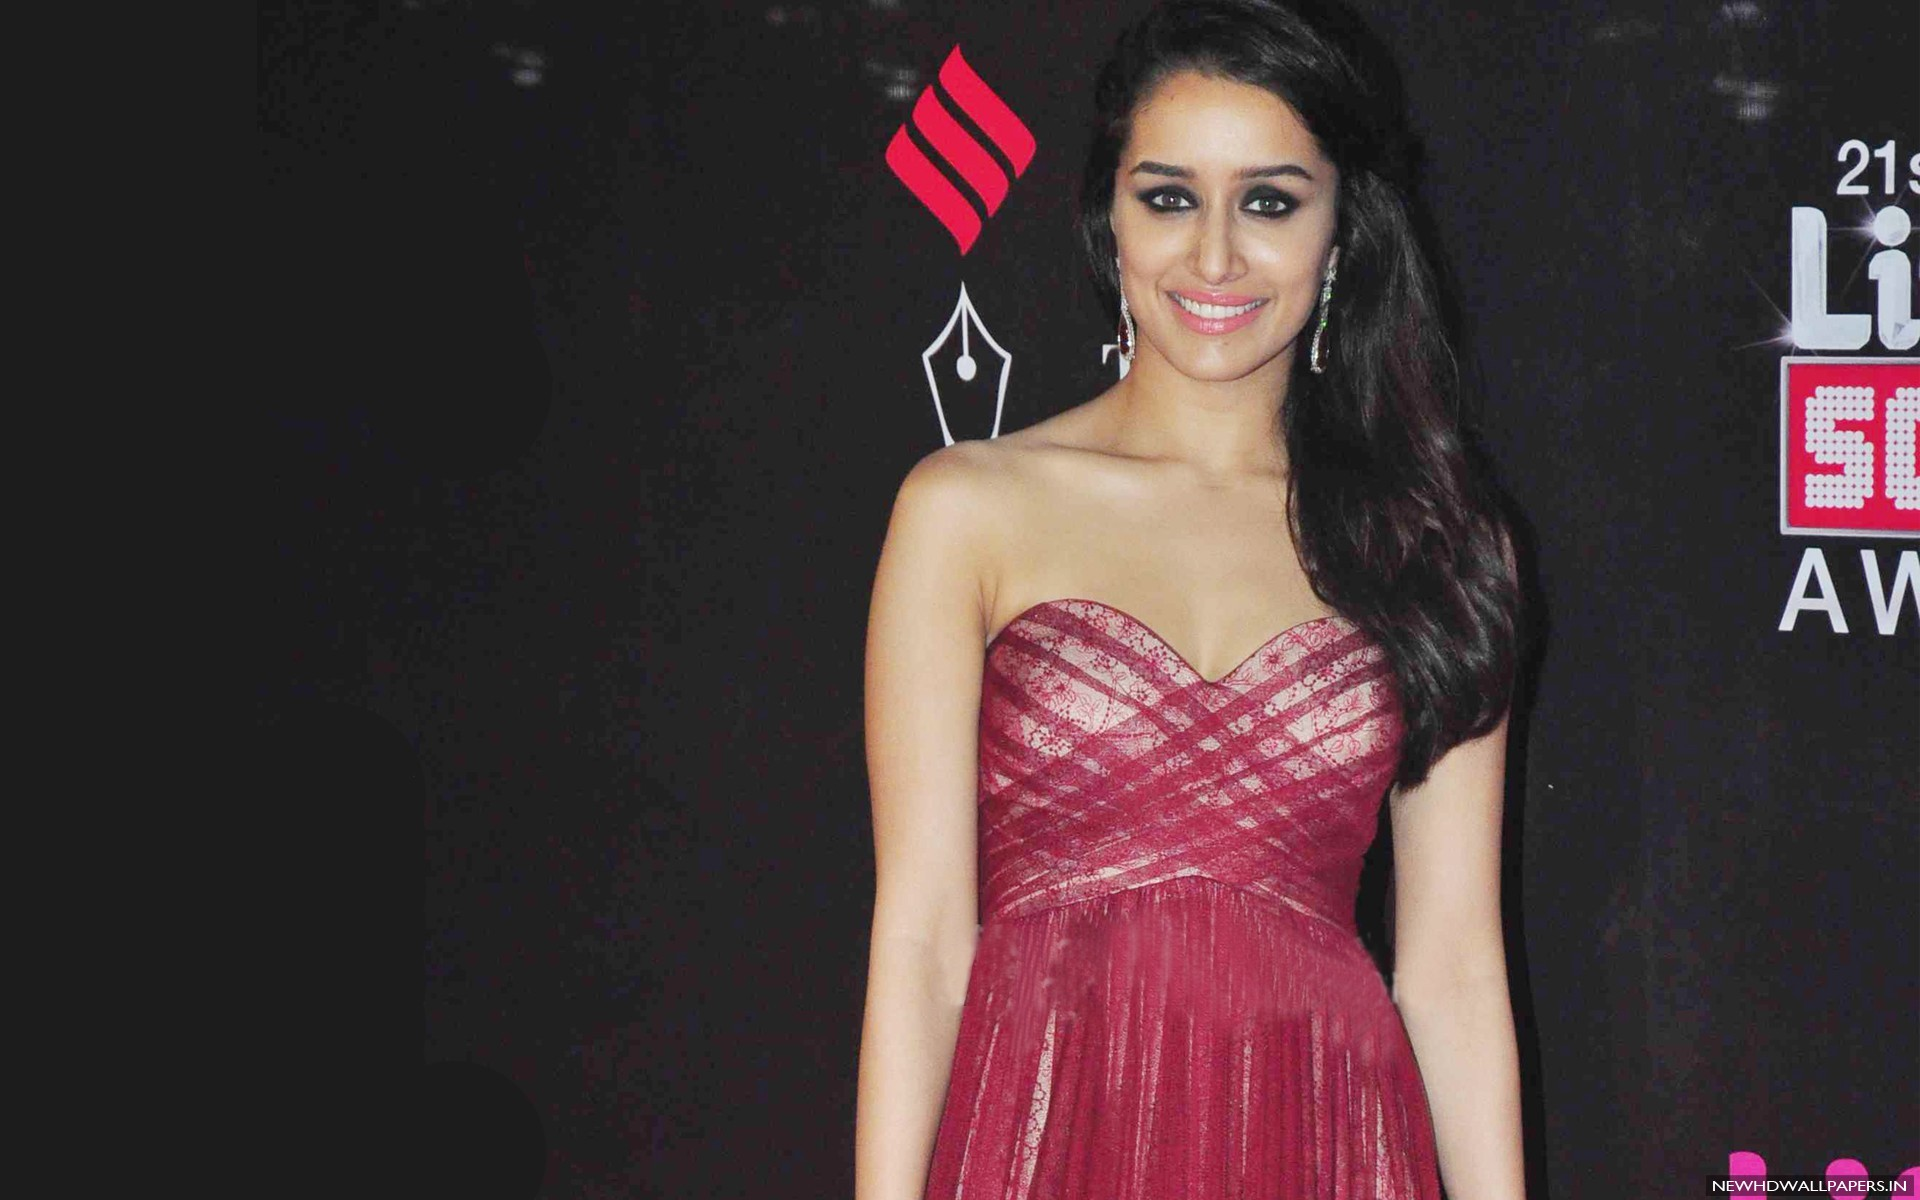 Shraddha Kapoor Bhatt HD Wallpapers 1080p 2015 Top Collections of 1920x1200